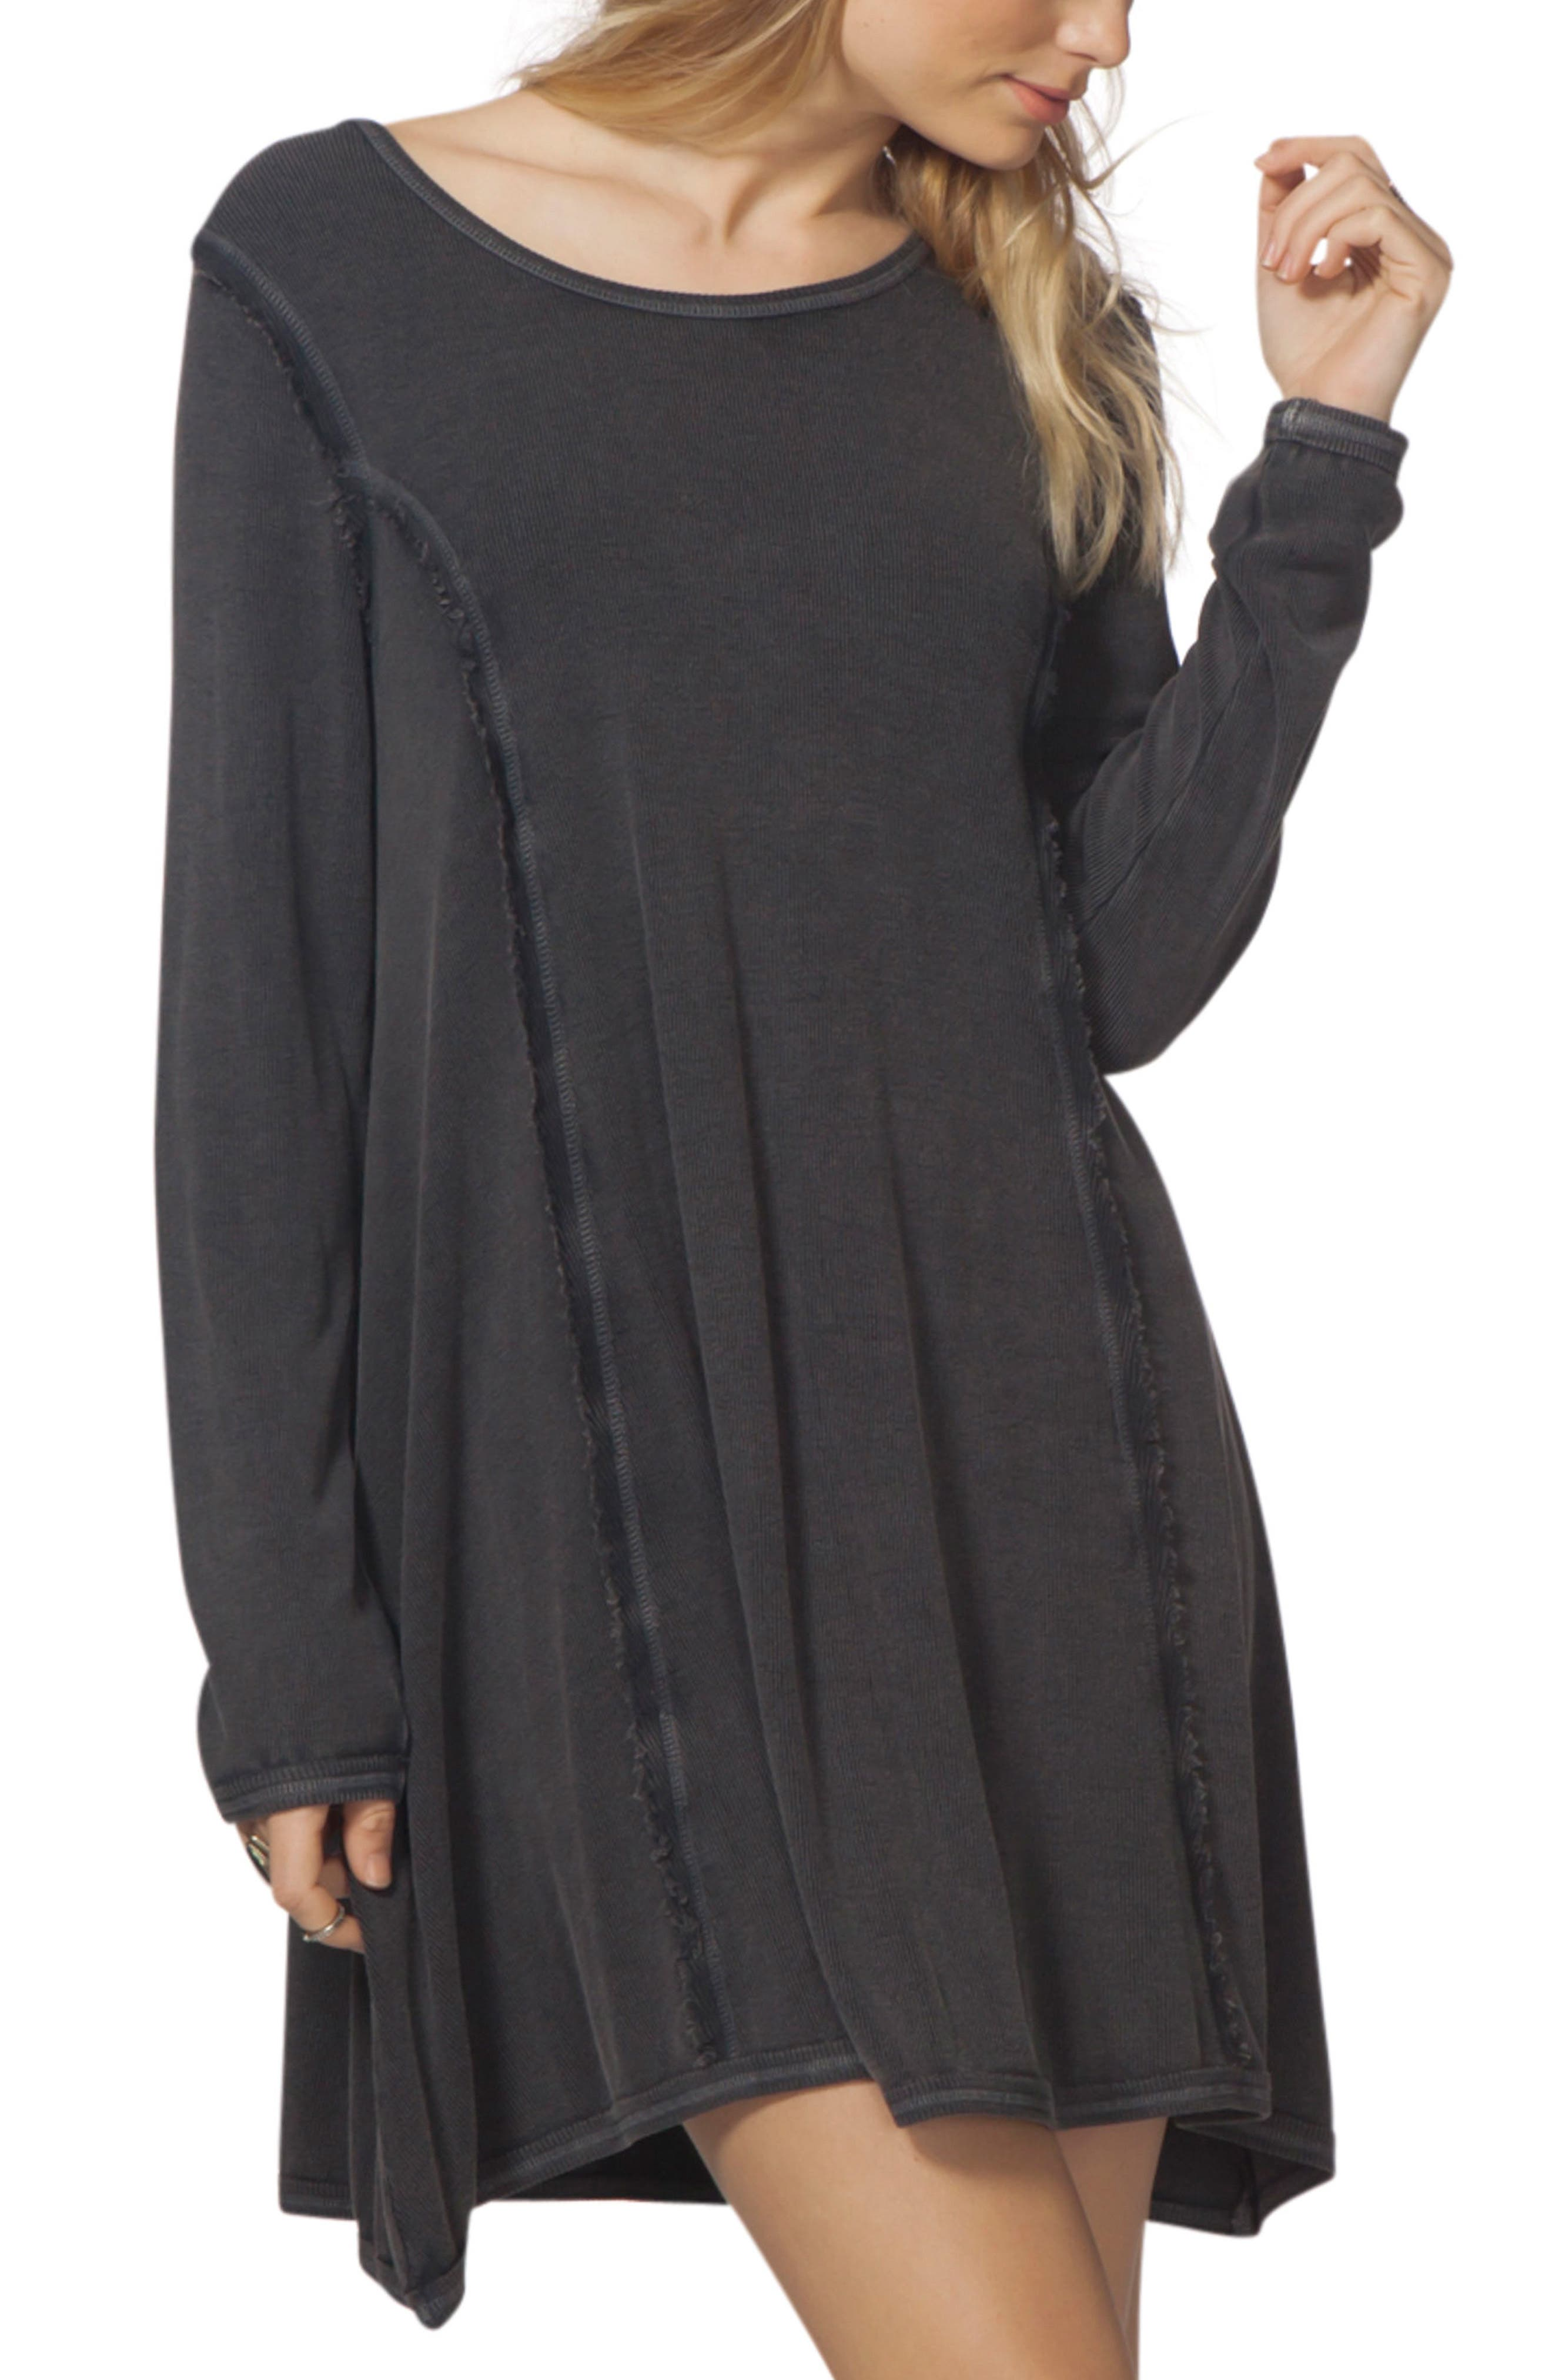 Margeaux Swing Dress,                         Main,                         color, Charcoal